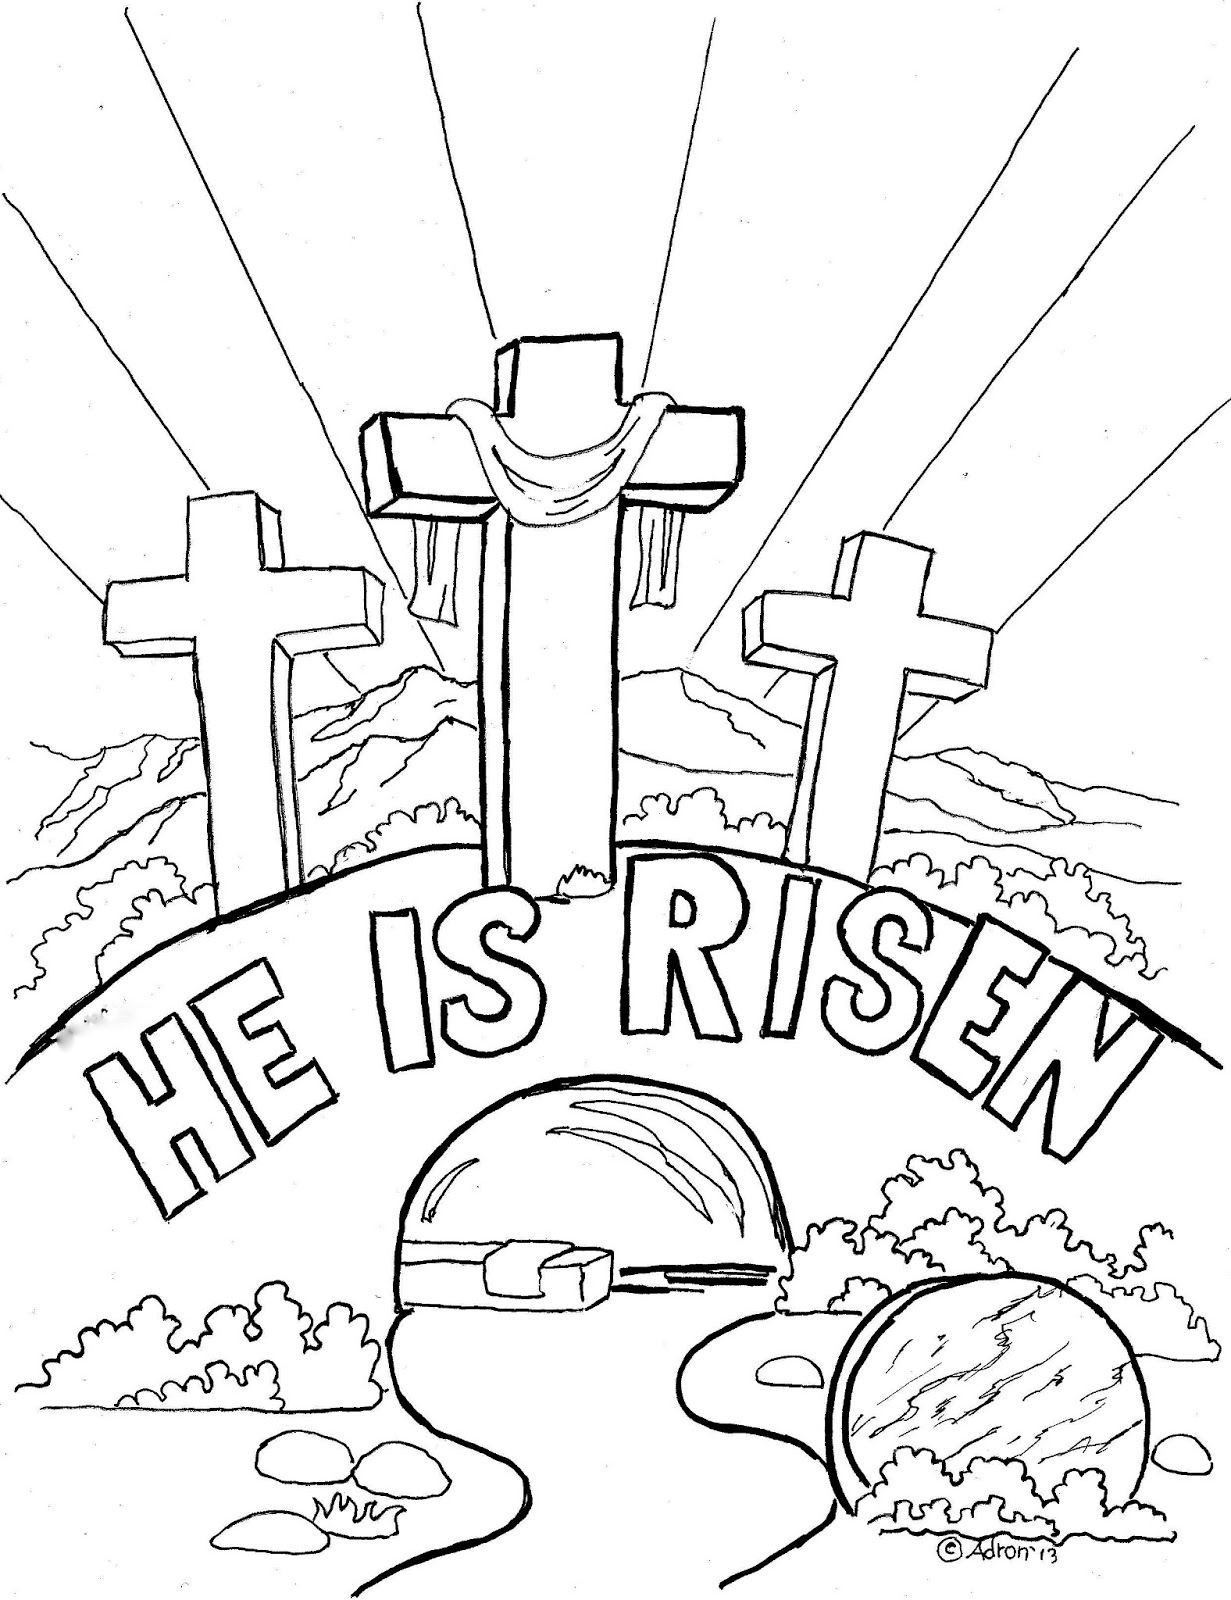 sunday school coloring pages easter Download-Free Easter Coloring Pages For Sunday School New 38 Princess Cartoons Free Coloring Sheets 8-j